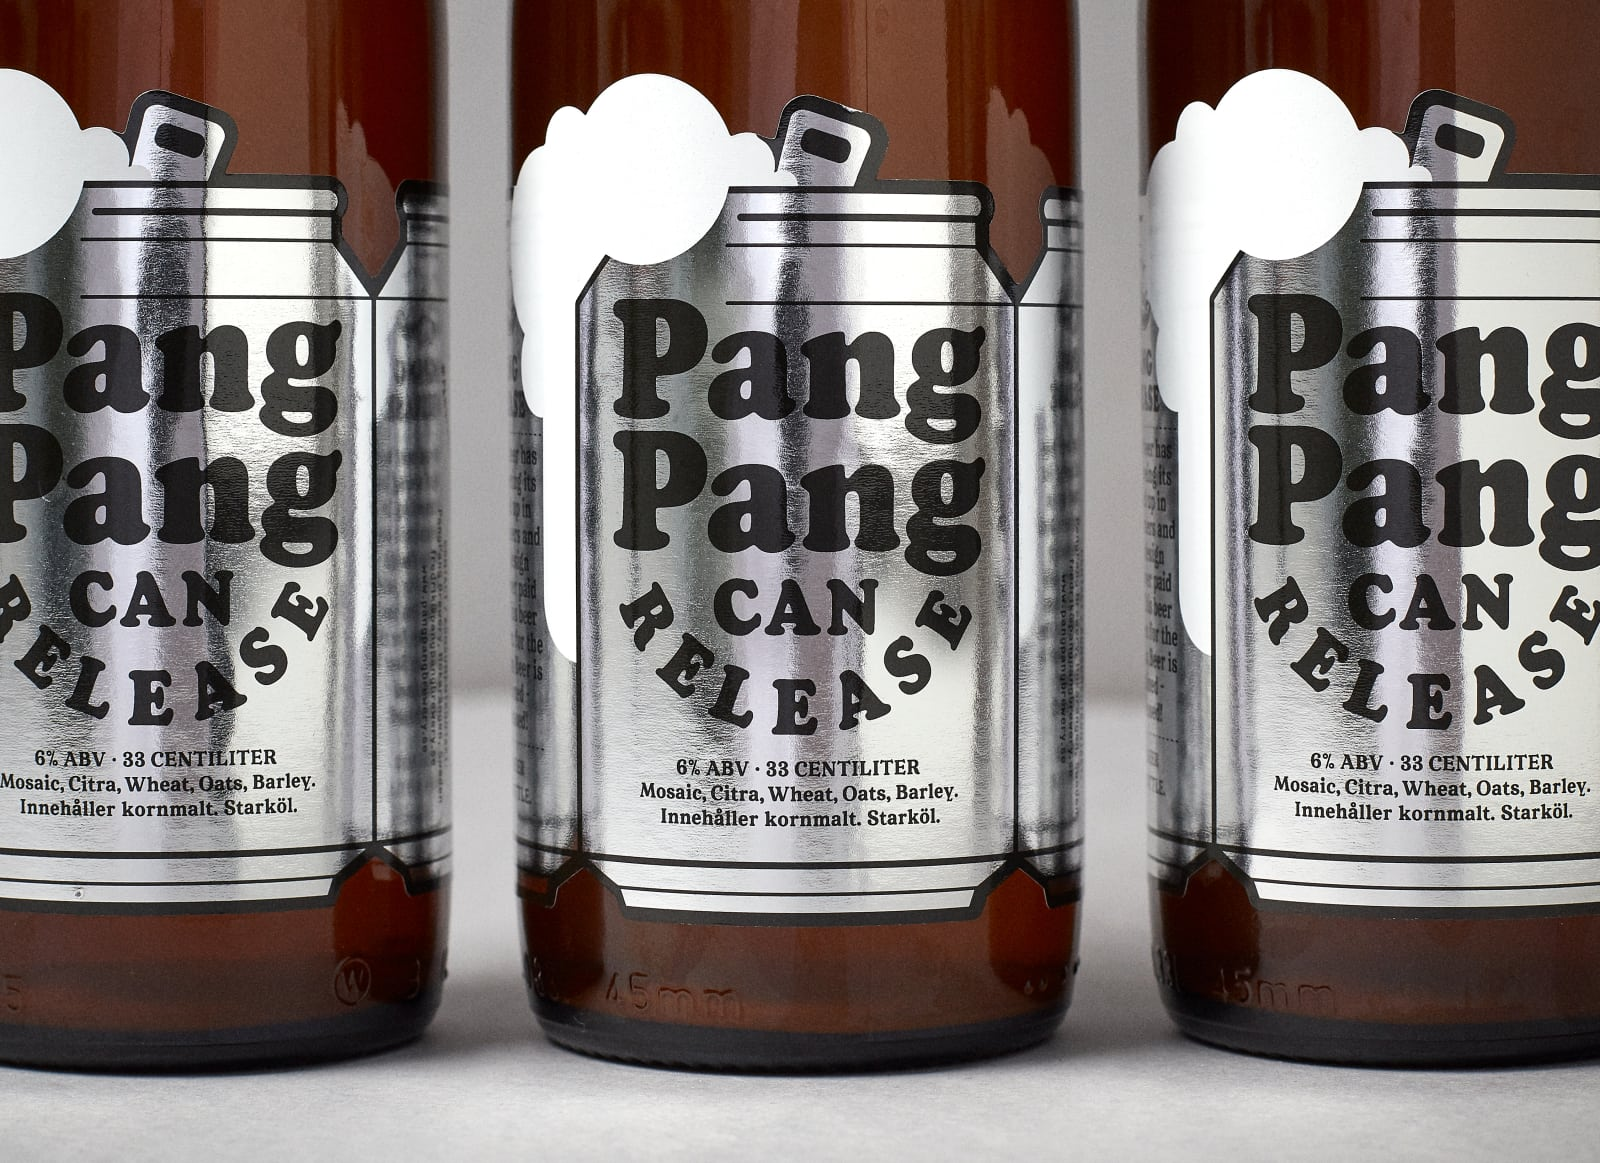 CAN RELEASE — Beer label design for PangPang Brewery